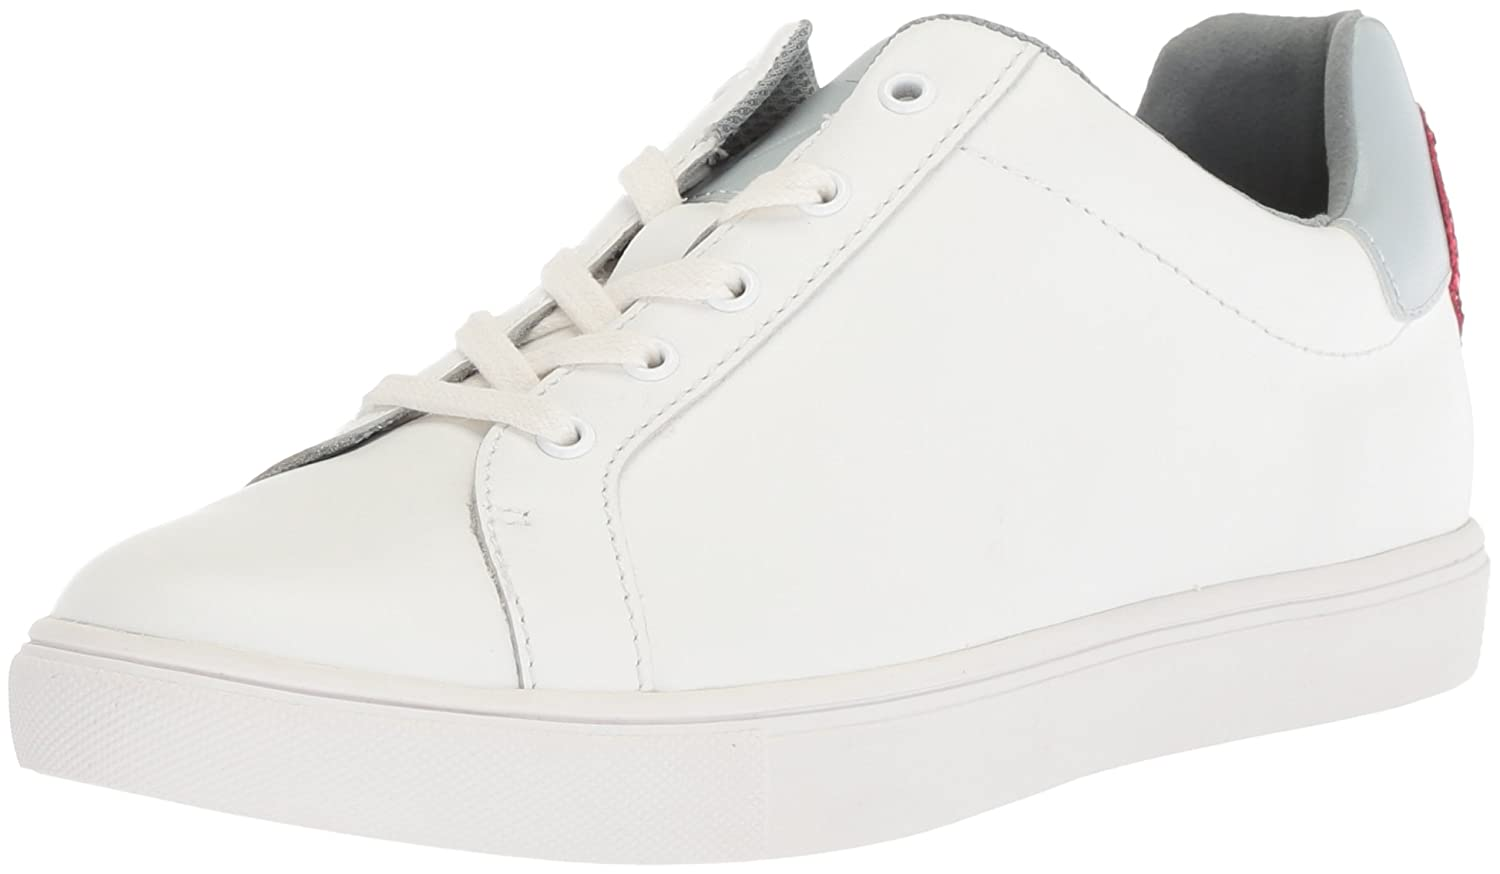 The Fix Women's Tailor Heart Lace-up Fashion Sneaker B0788D3ZCX 6 B(M) US|Bright White Leather